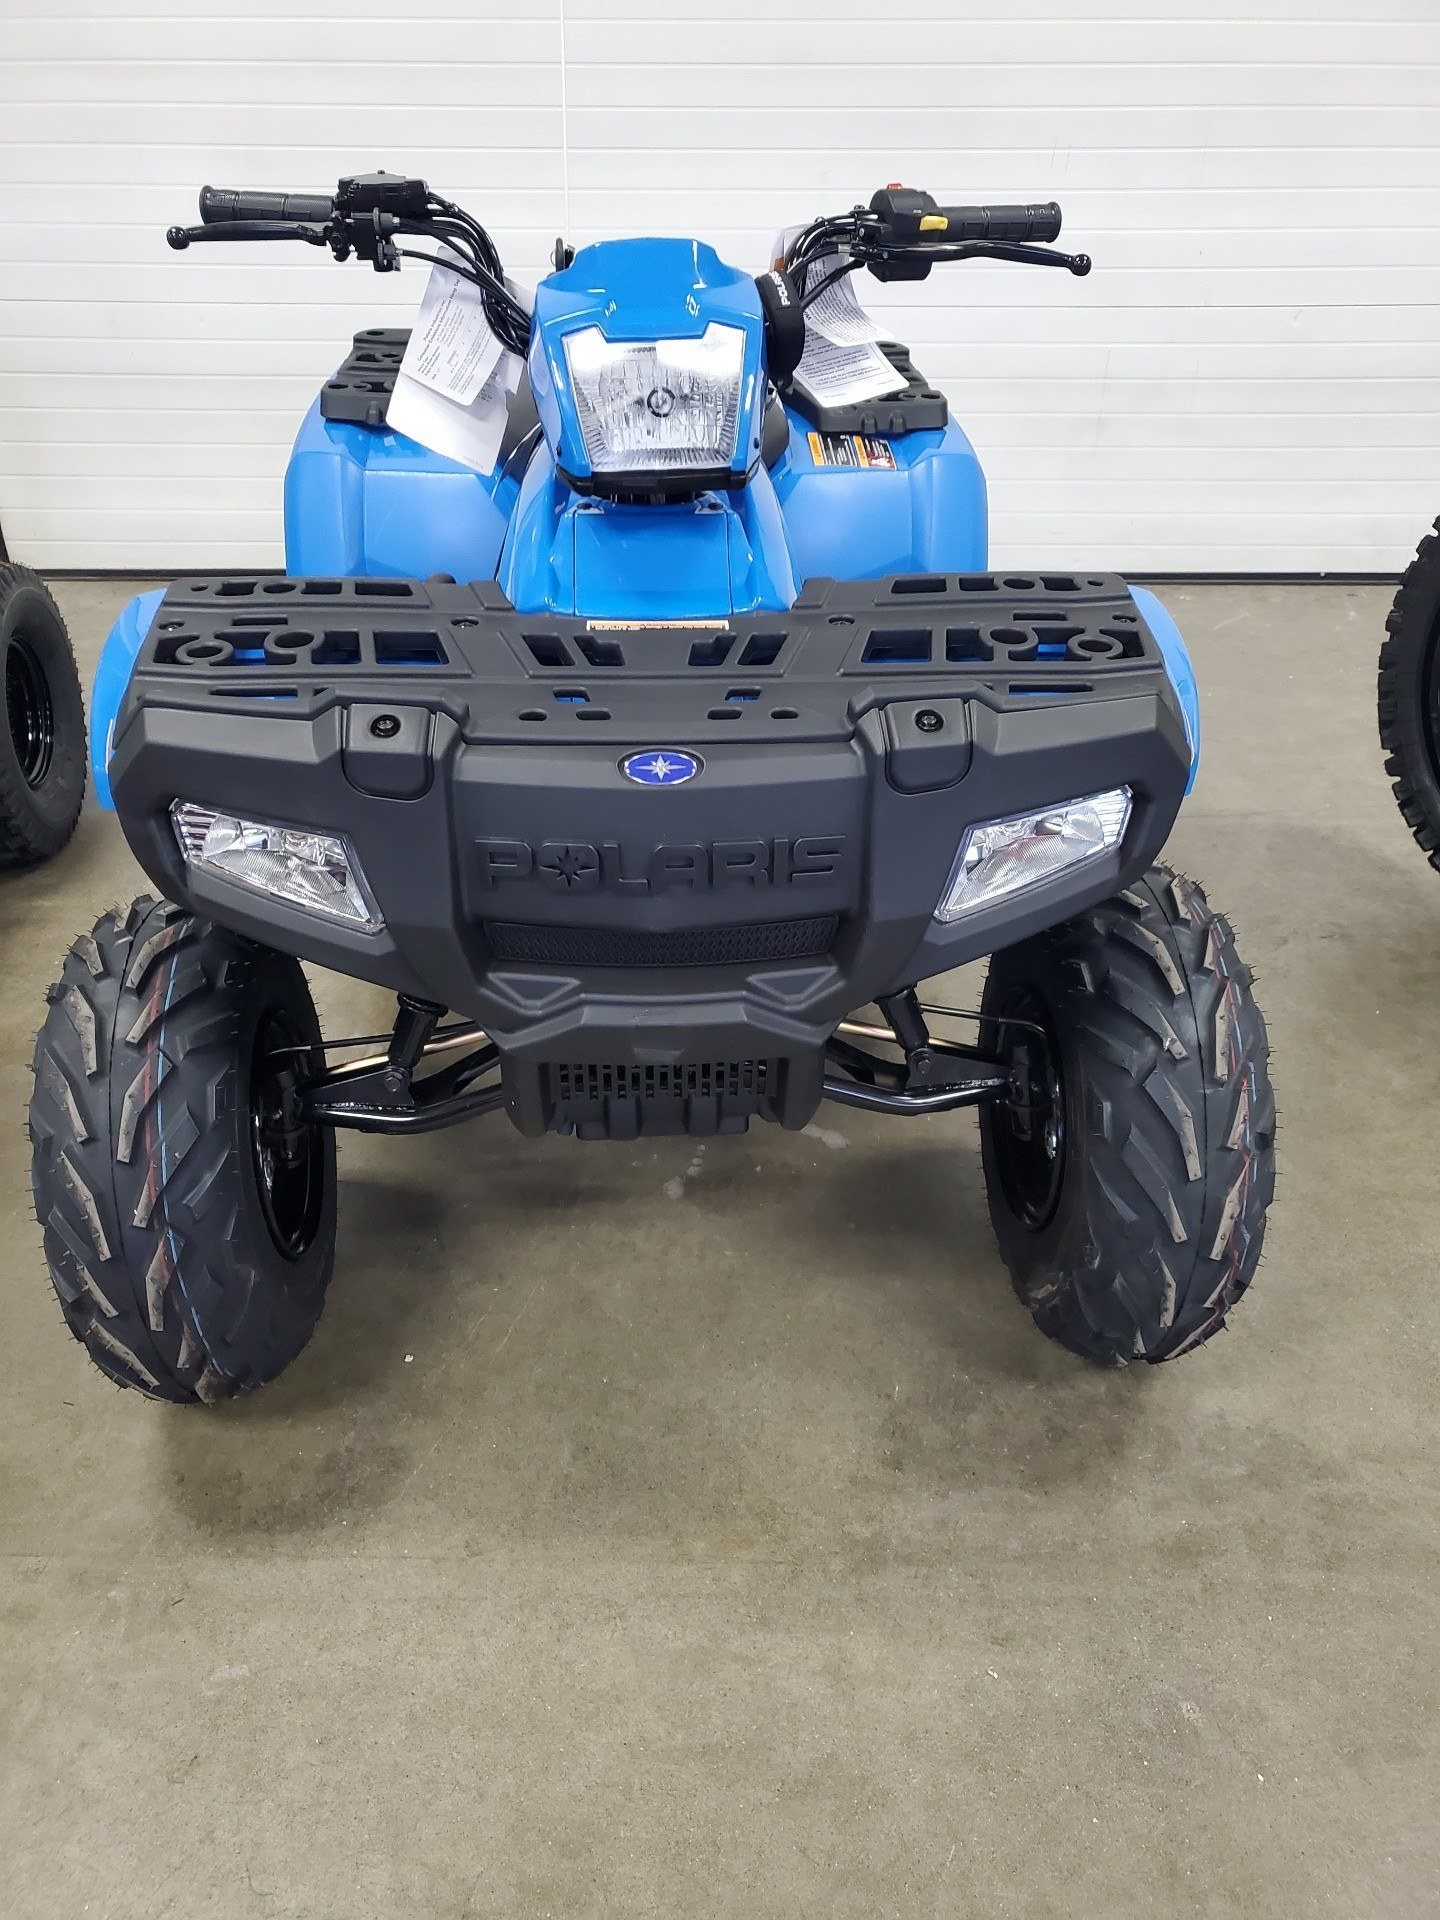 2021 Polaris Sportsman 110 EFI in Soldotna, Alaska - Photo 1